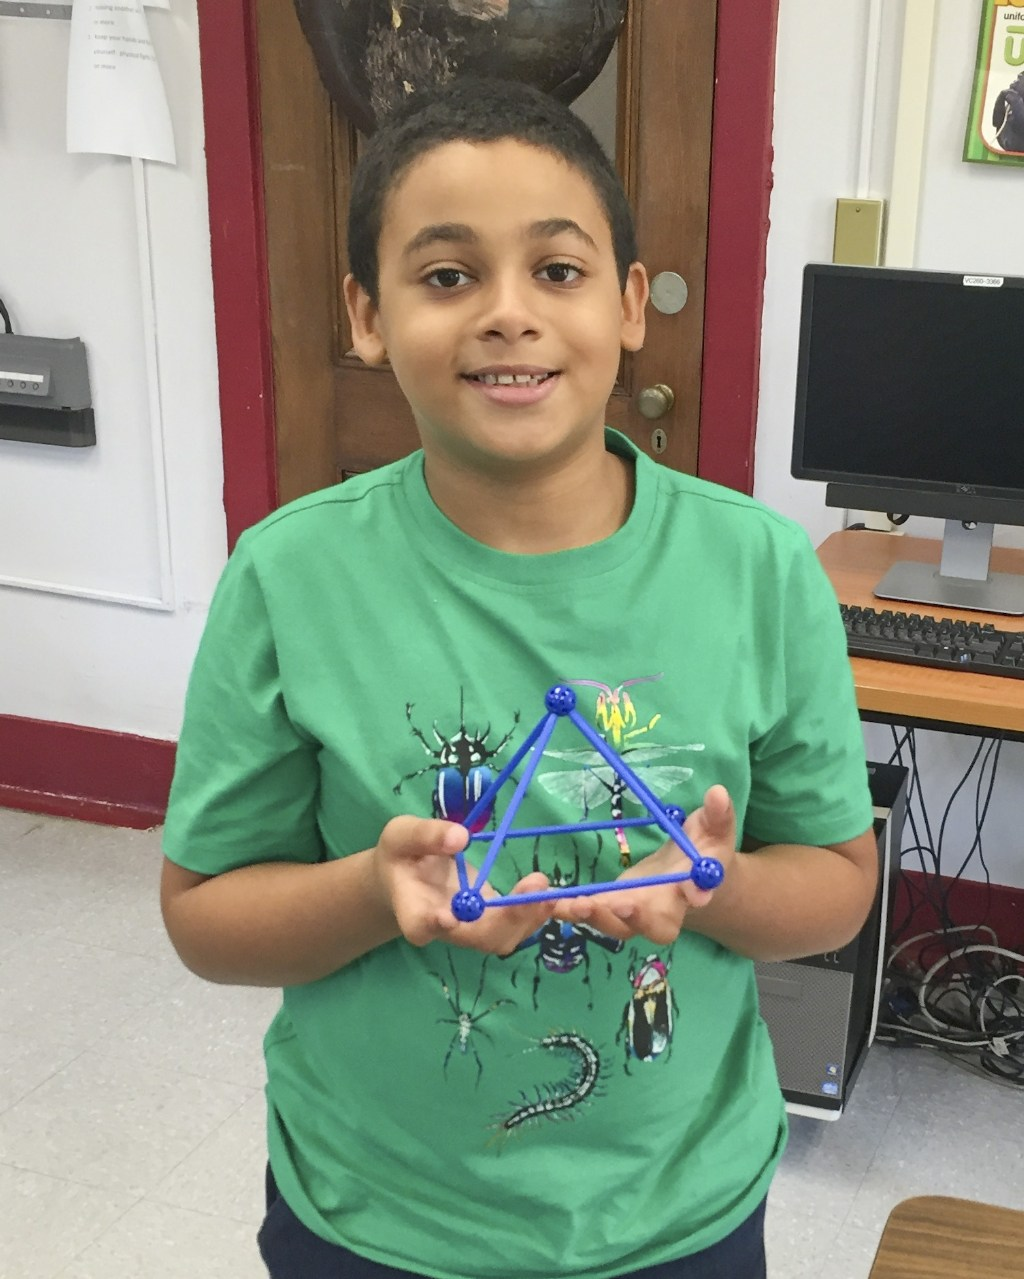 Student showing off his project